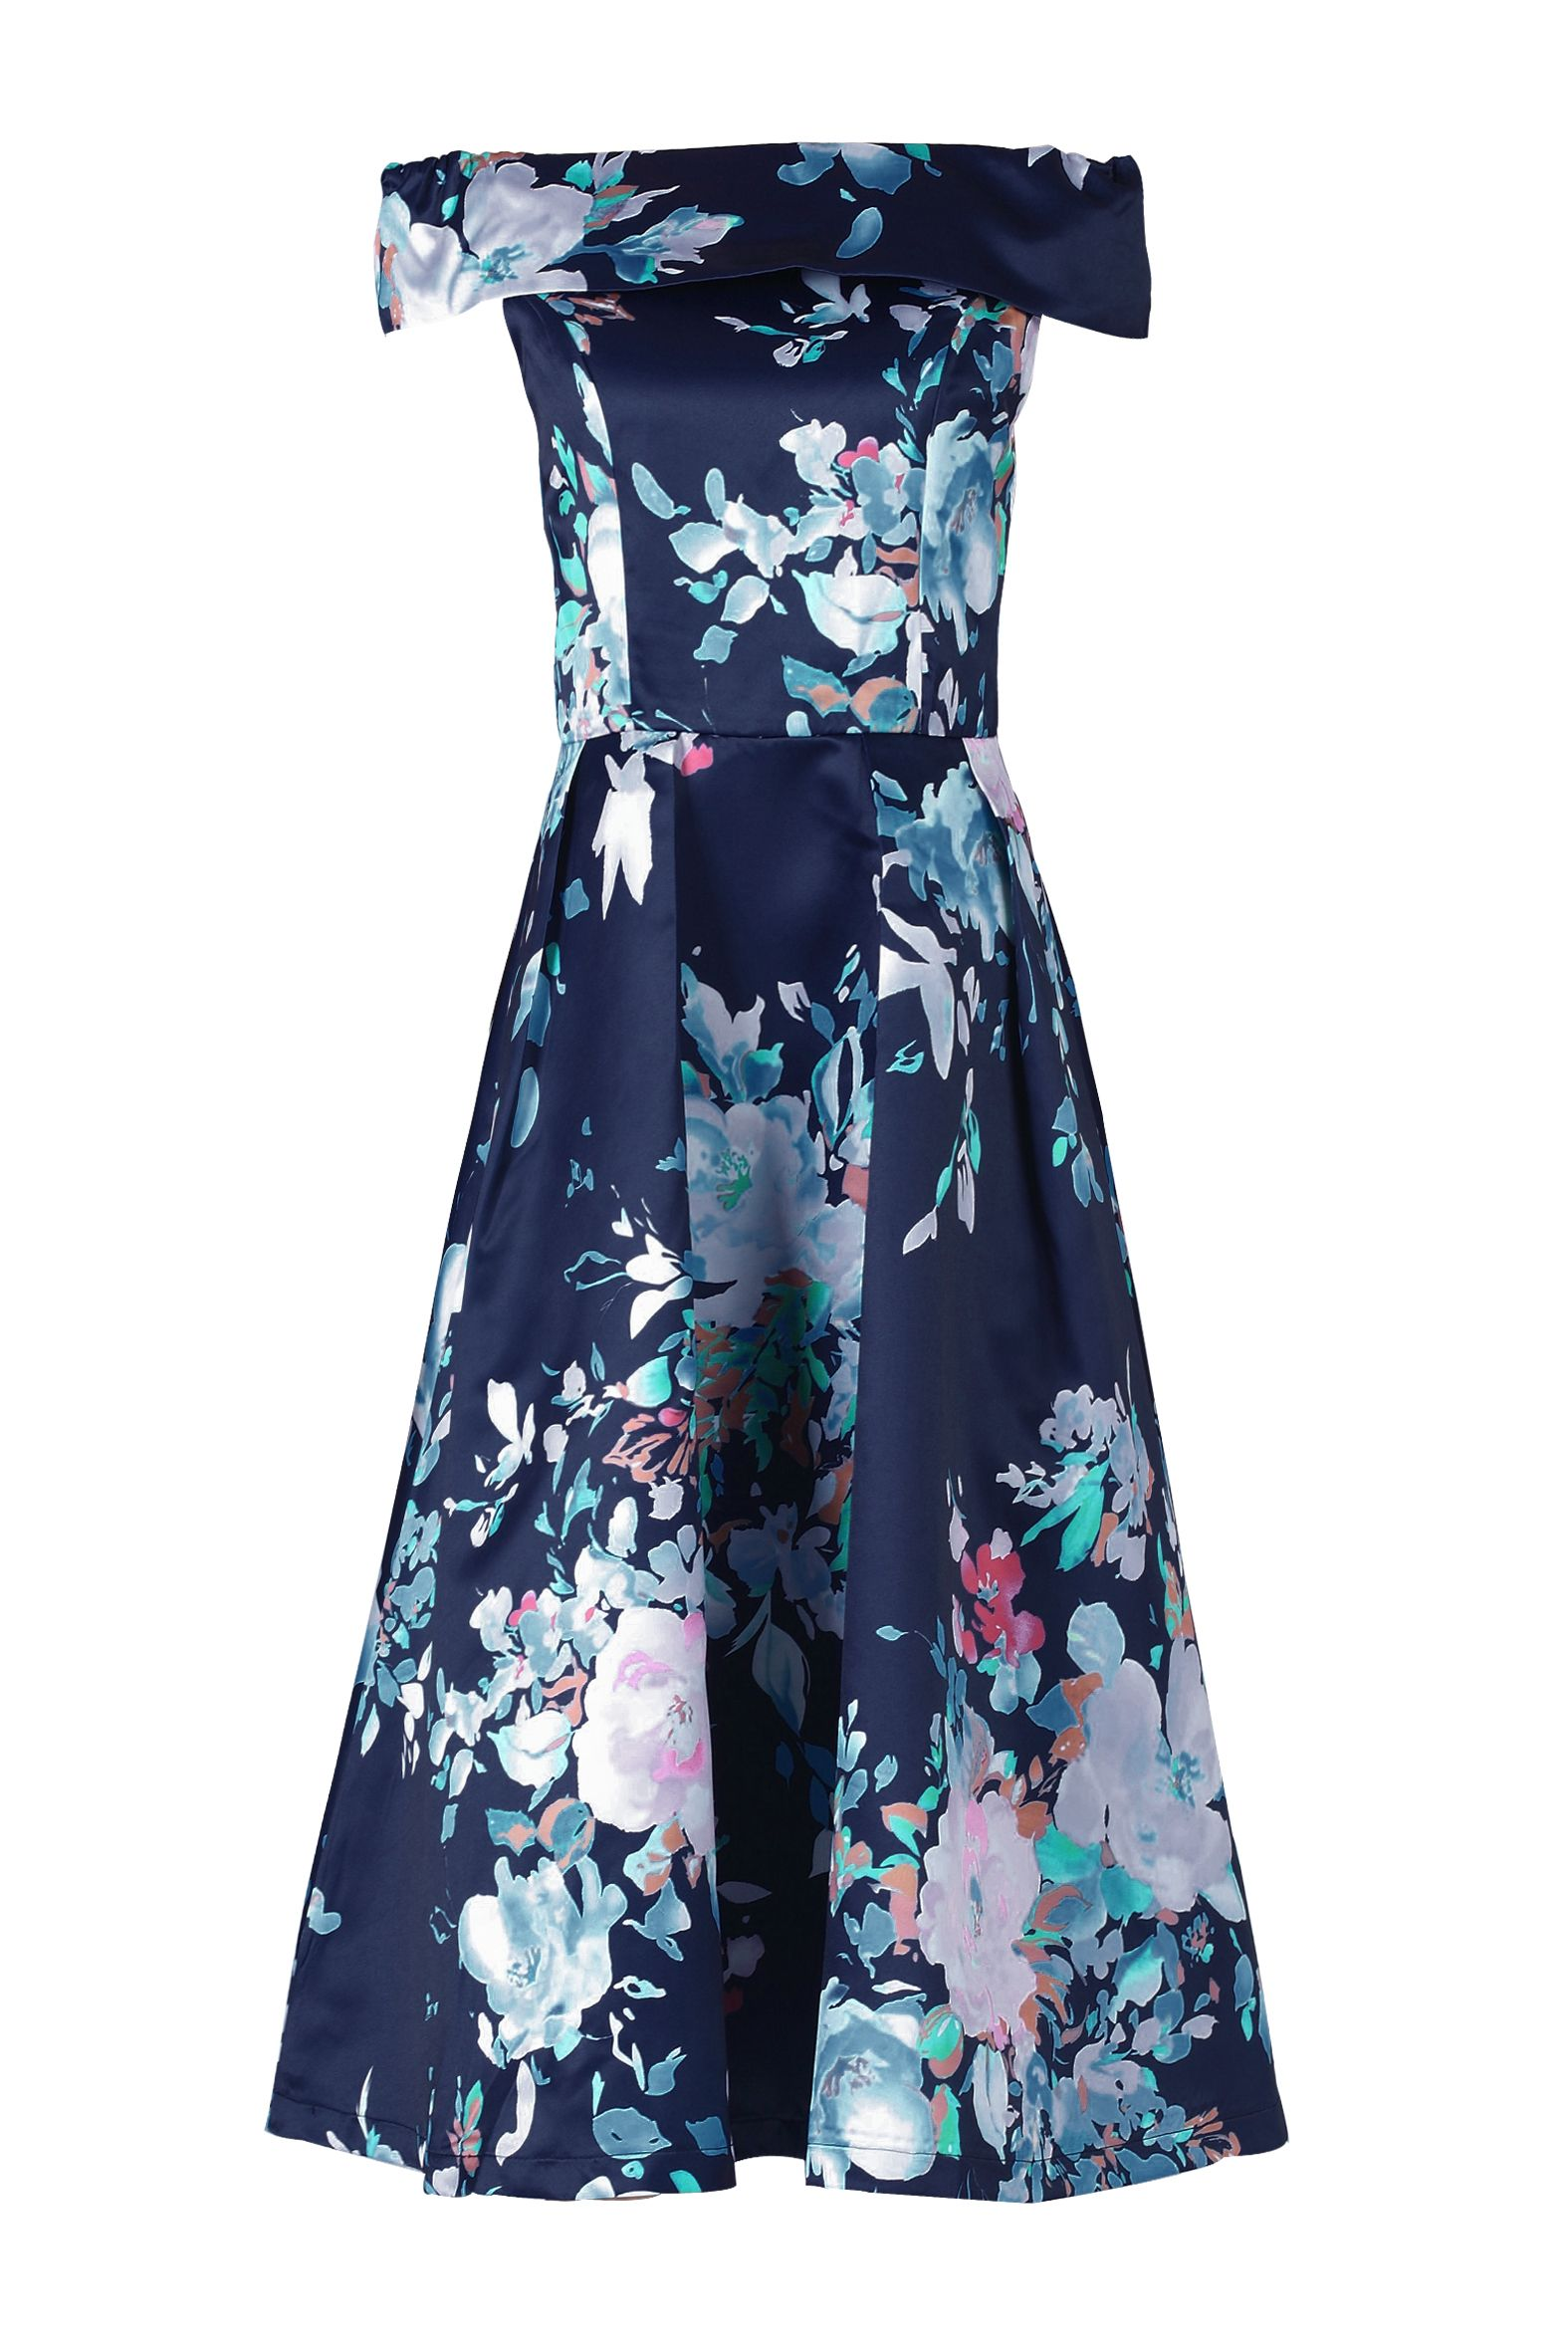 Jolie Moi Bardot Neckline Prom Dress, Blue